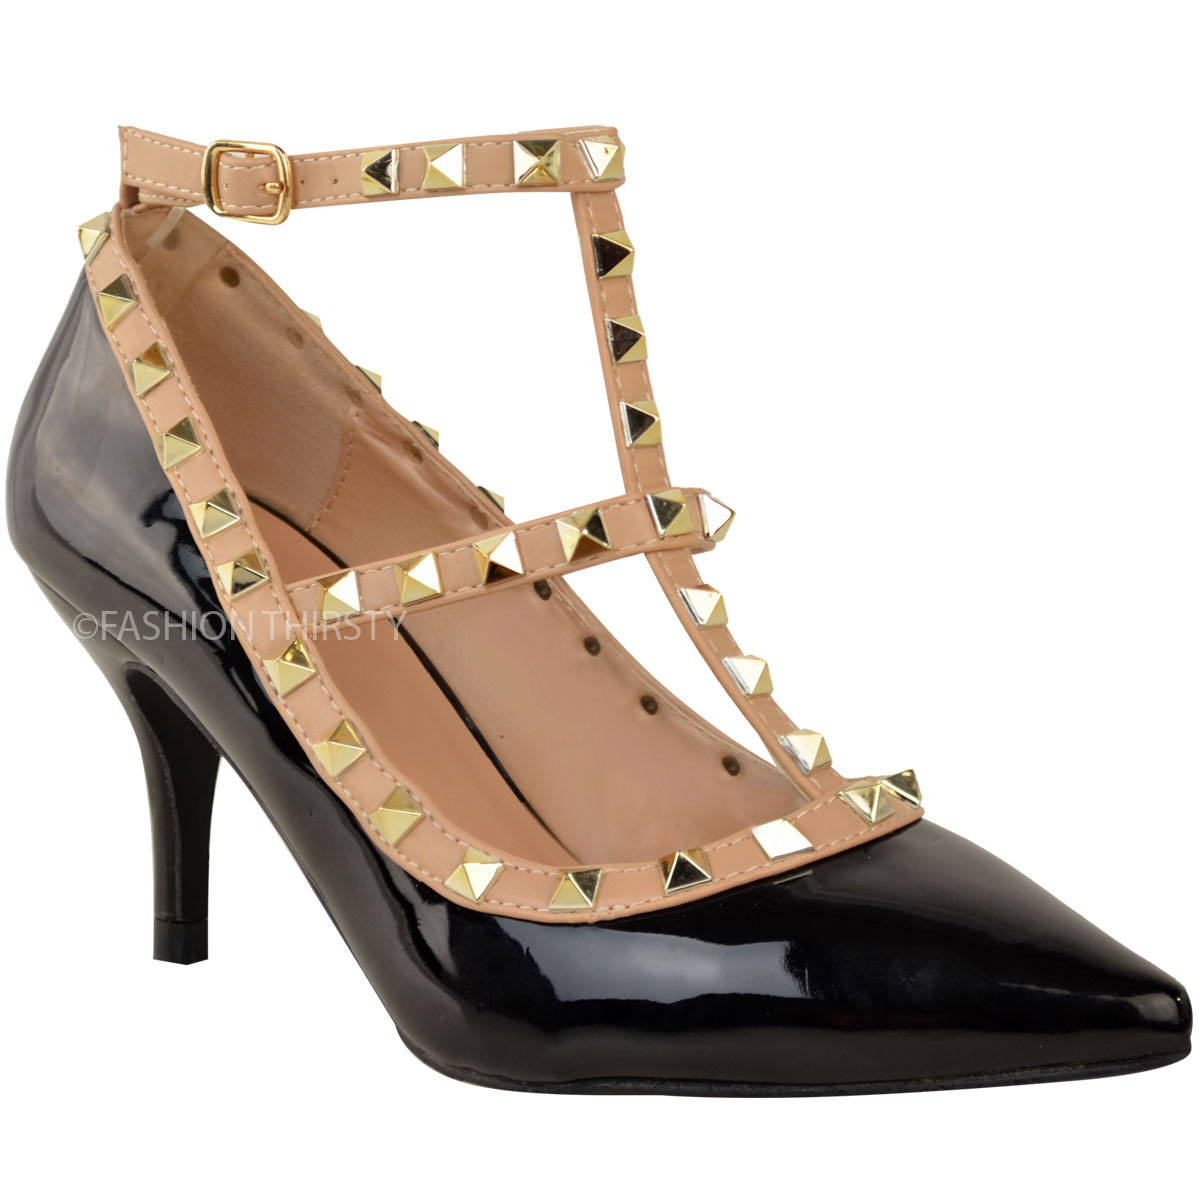 Shoes With Studs Low Heel